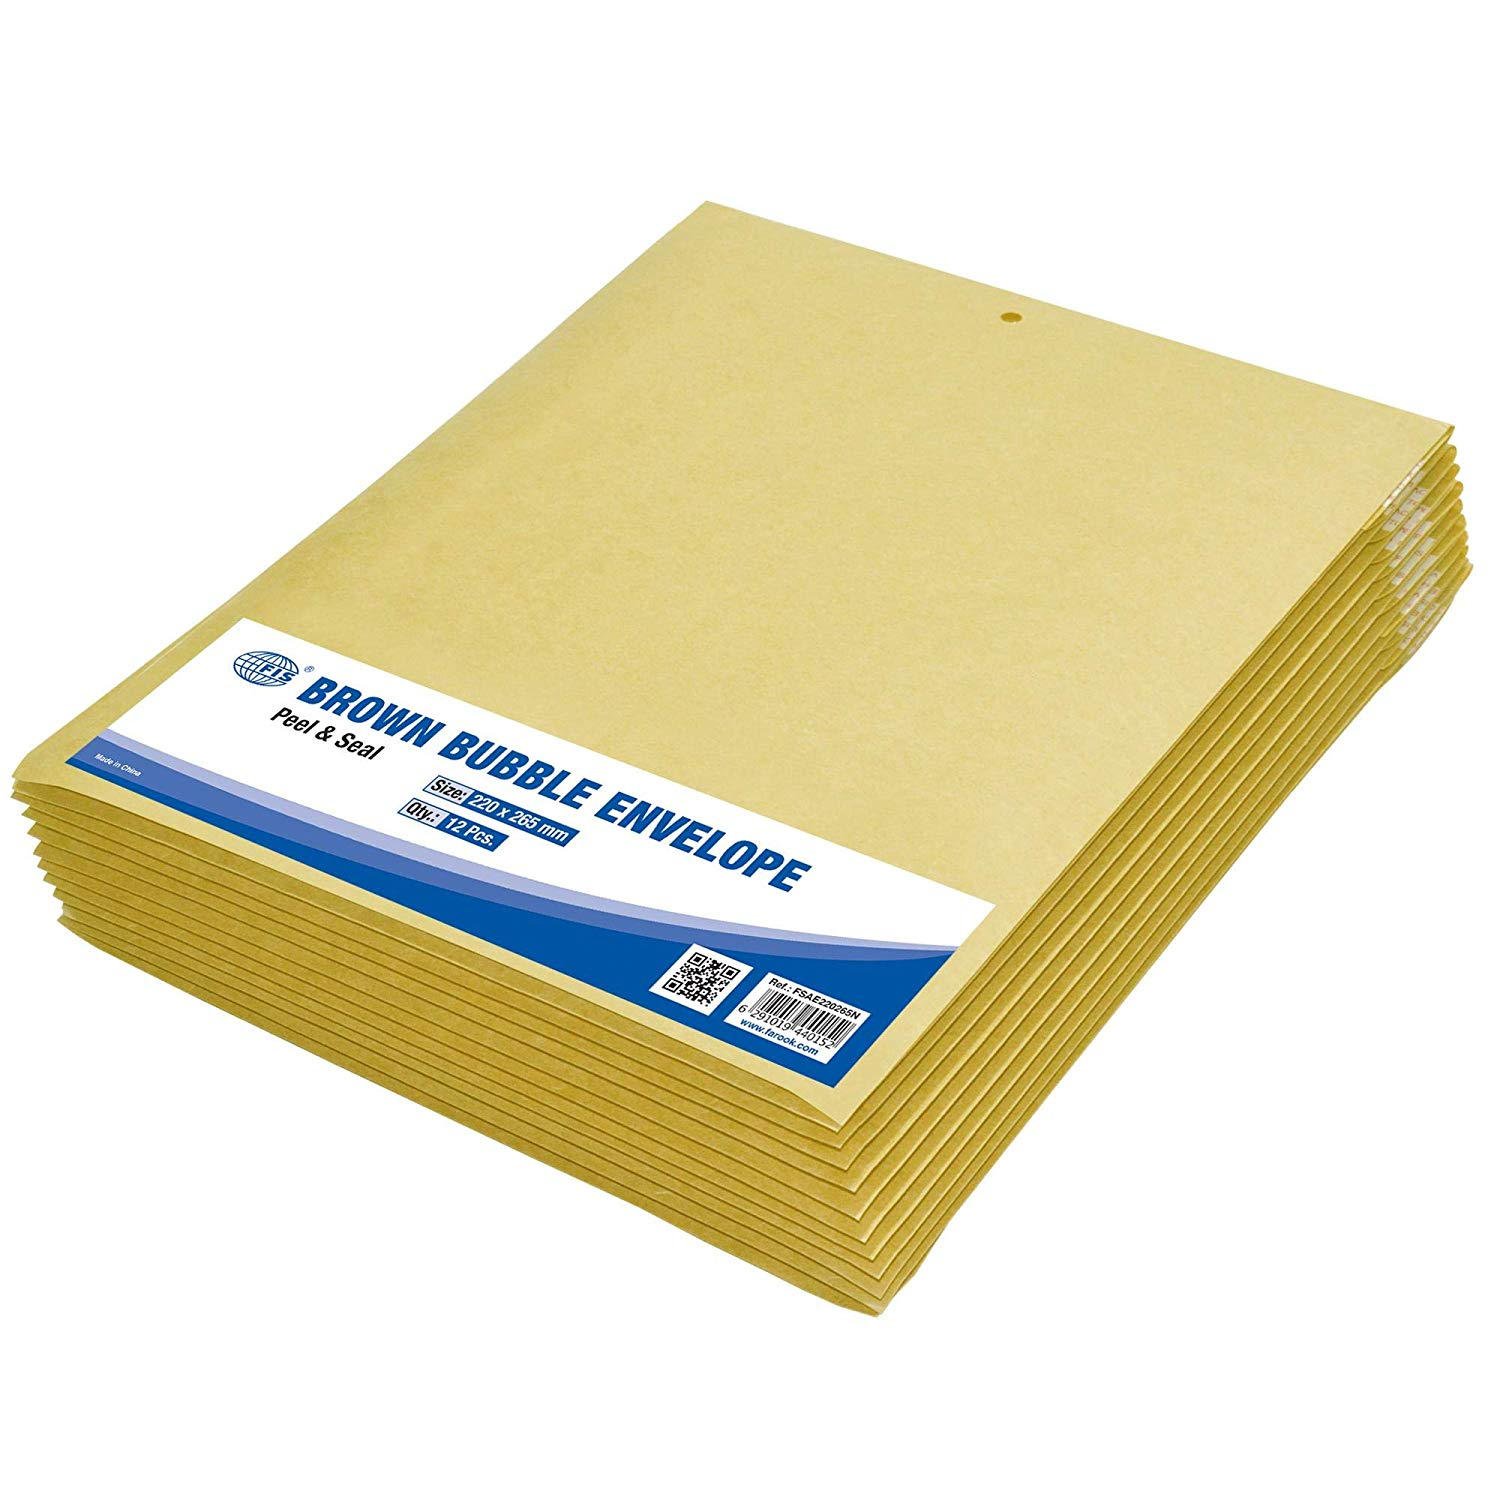 FIS Peel and Seal Bubble Envelopes 220 x 265mm FSAE220265N - Brown (pkt/12pcs)